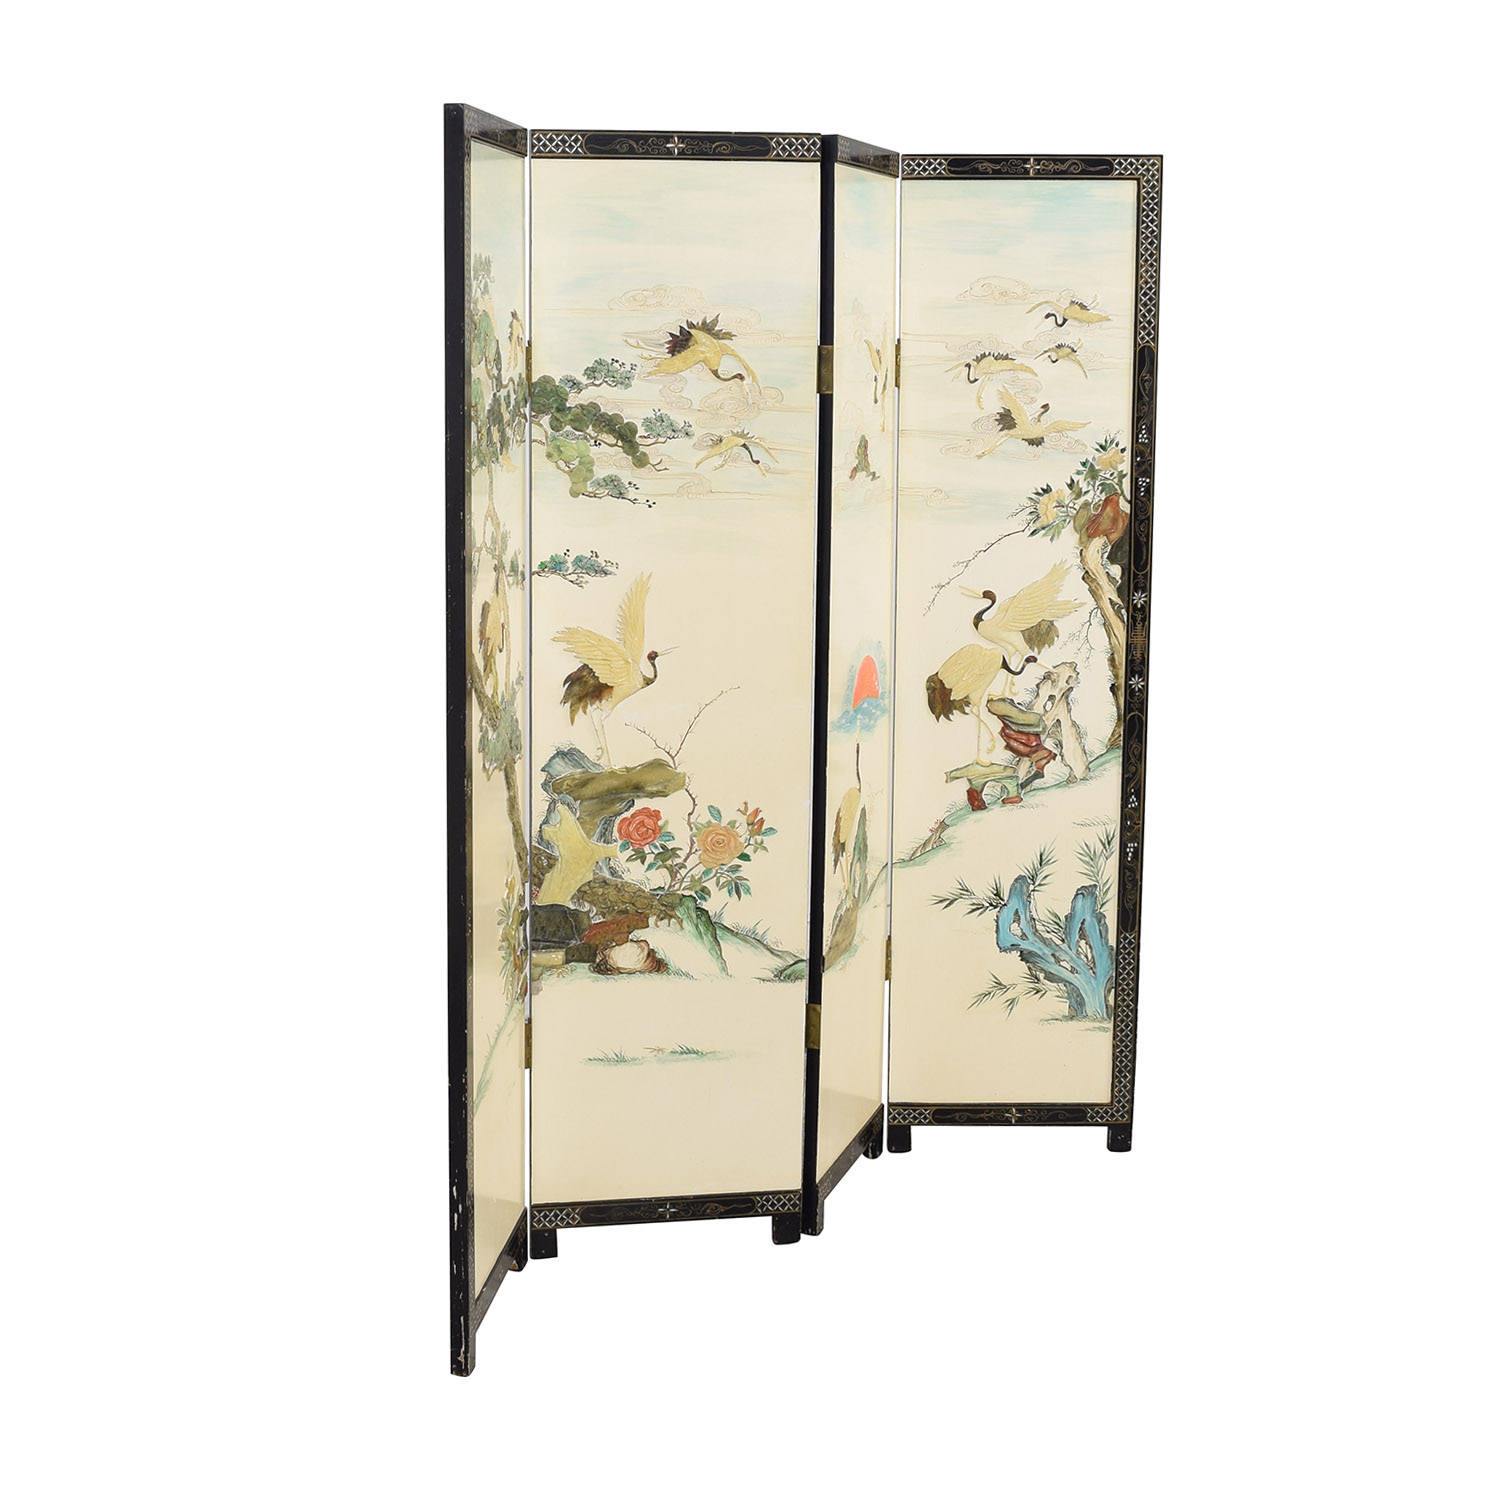 Chinese Style Panel Screen Divider Decor